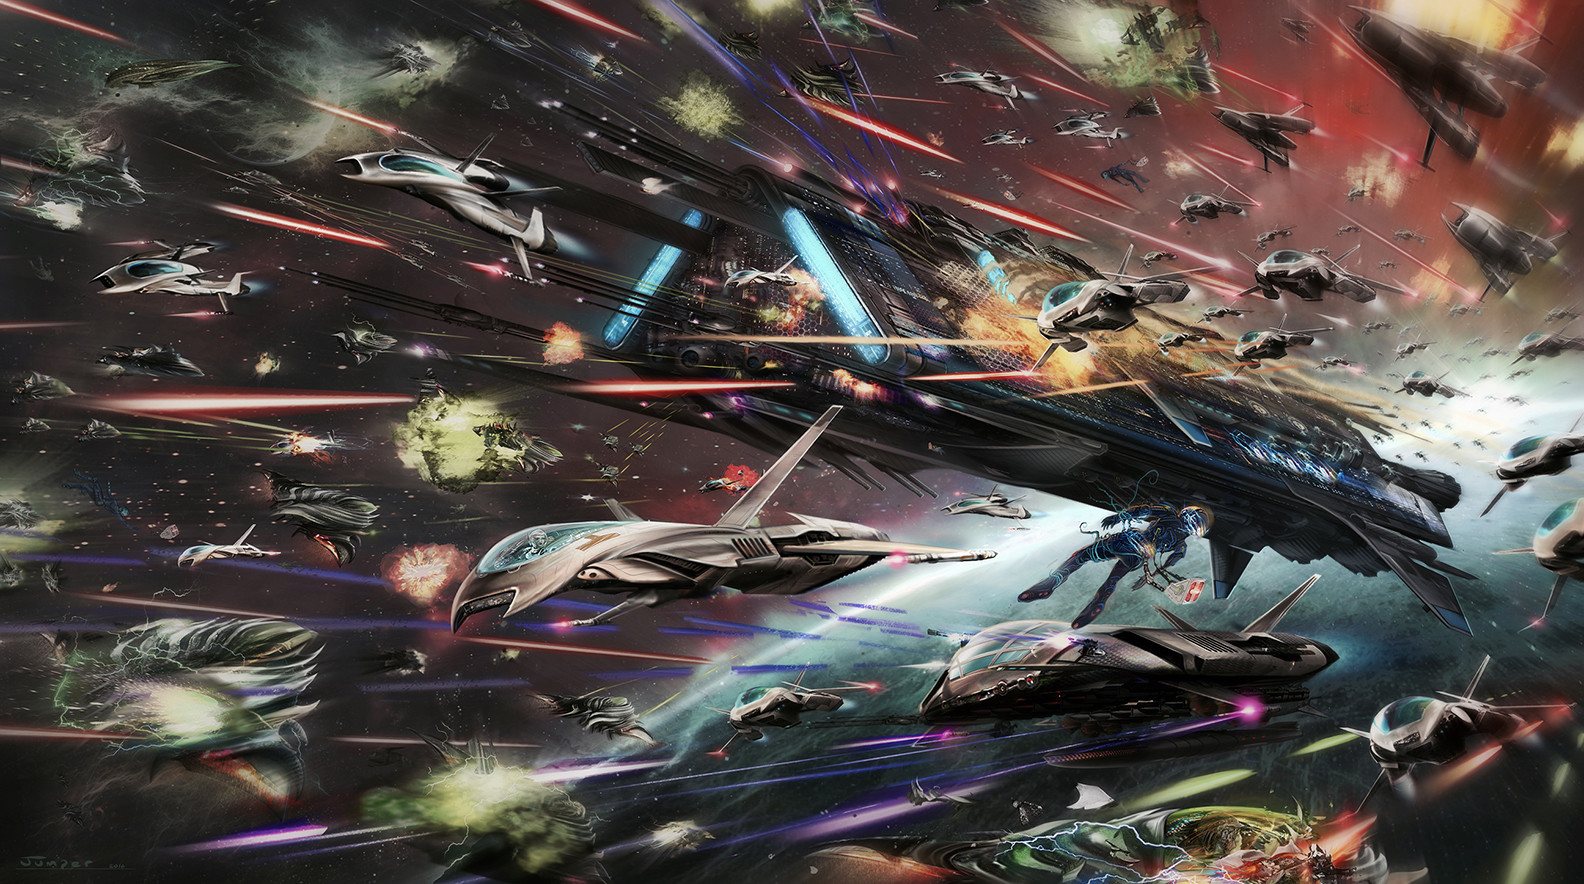 The Battle of Orion's Rage